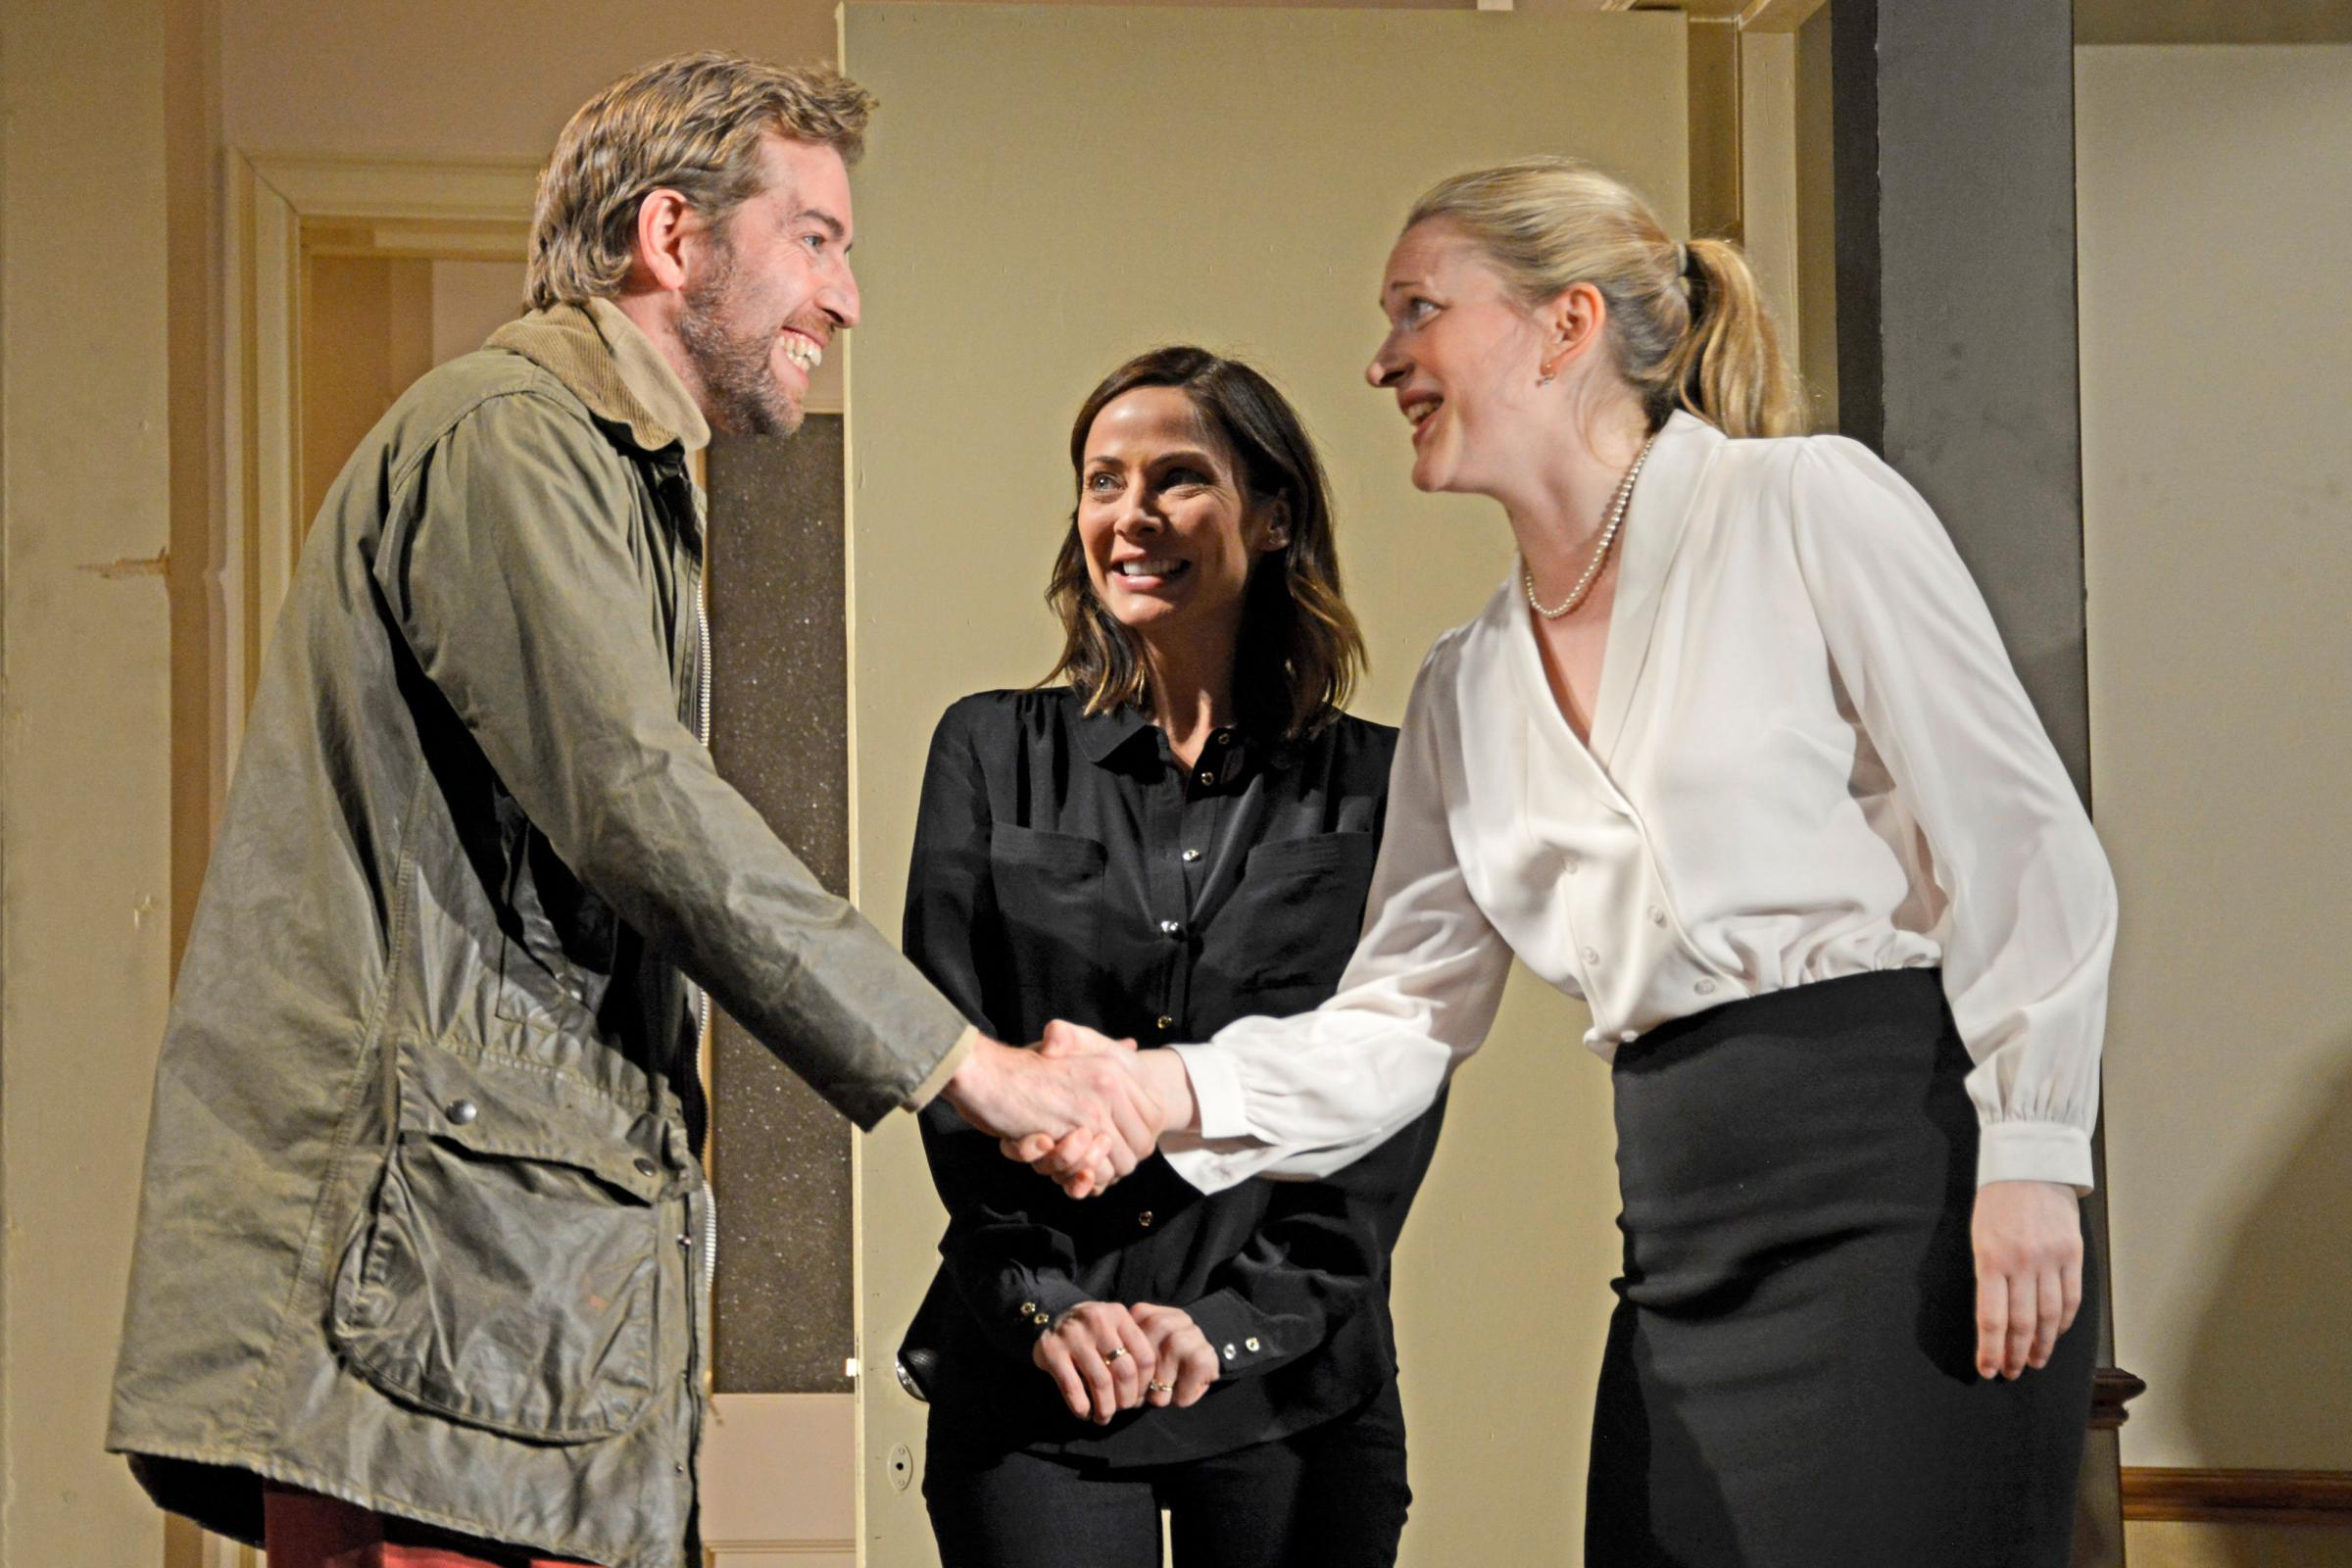 Edward Bennett, Natalie Imbruglia and Claire Price in The Things We Do For Love (photo Nobby Clark)